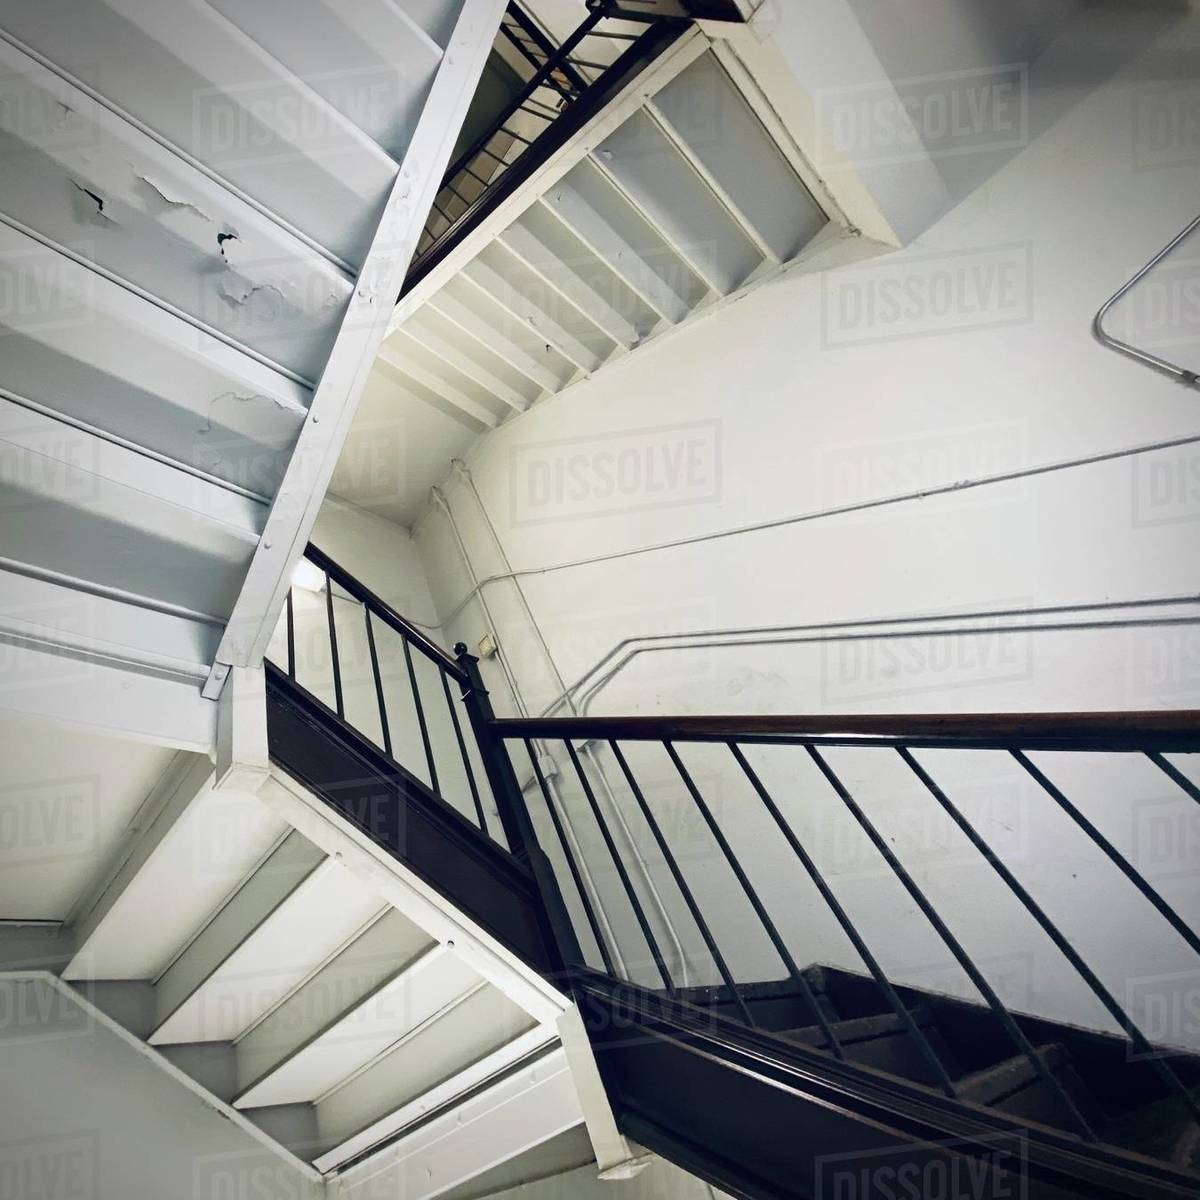 Interior staircase forms abstract pattern, similar to art by M C Escher, with unusual angle from underneath. Square composition Royalty-free stock photo